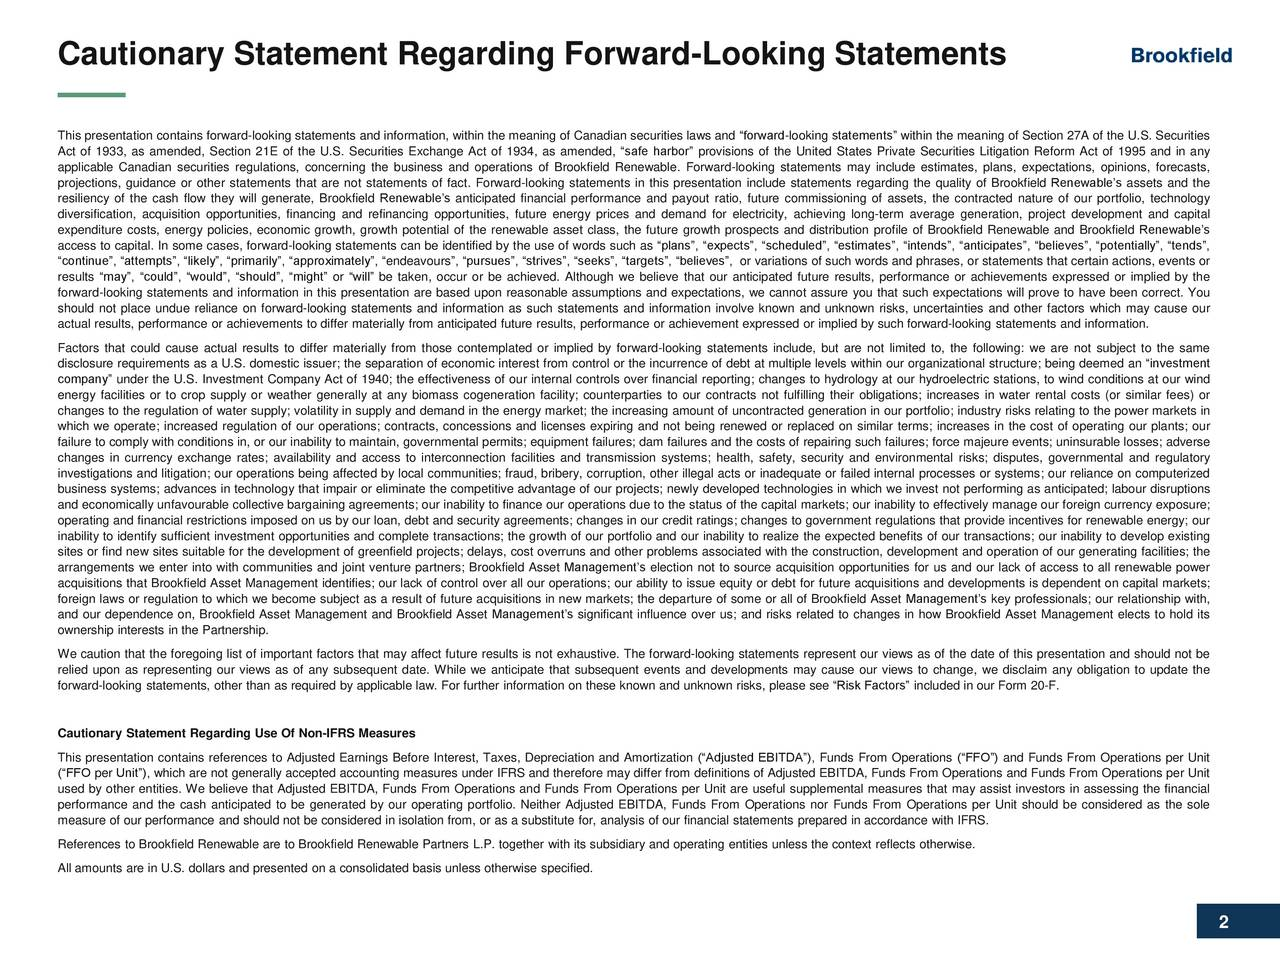 R17 G17 B17 Cautionary Statement Regarding Forward-Looking Statements Title Slide Font This presentation contains forward-looking statements and information, within the meaning of Canadian securities laws and forward-looking statements within the meaning of Section 27A of the U.S. Securities Dark Backdrop R255 G255 B255 Act of 1933, as amended, Section 21E of the U.S. Securities Exchange Act of 1934, as amended, safe harbor provisions of the United States Private Securities Litigation Reform Act of 1995 and in any applicable Canadian securities regulations, concerning the business and operations of Brookfield Renewable. Forward-looking statements may include estimates, plans, expectations, opinions, forecasts, projections, guidance or other statements that are not statements of fact. Forward-looking statements in this presentation include statements regarding the quality of Brookfield Renewables assets and the Light Background resiliency of the cash flow they will generate, Brookfield Renewables anticipated financial performance and payout ratio, future commissioning of assets, the contracted nature of our portfolio, technology R17 G17 B17 diversification, acquisition opportunities, financing and refinancing opportunities, future energy prices and demand for electricity, achieving long-term average generation, project development and capital expenditure costs, energy policies, economic growth, growth potential of the renewable asset class, the future growth prospects and distribution profile of Brookfield Renewable and Brookfield Renewables access to capital. In some cases, forward-looking statements can be identified by the use of words such as plans, expects, scheduled, estimates, intends, anticipates, believes, potentially, tends, Sub-headers & Emphasis Text continue, attempts, likely, primarily, approximately, endeavours, pursues, strives, seeks, targets, believes, or variations of such words and phrases, or statements that certain actions, events or results may